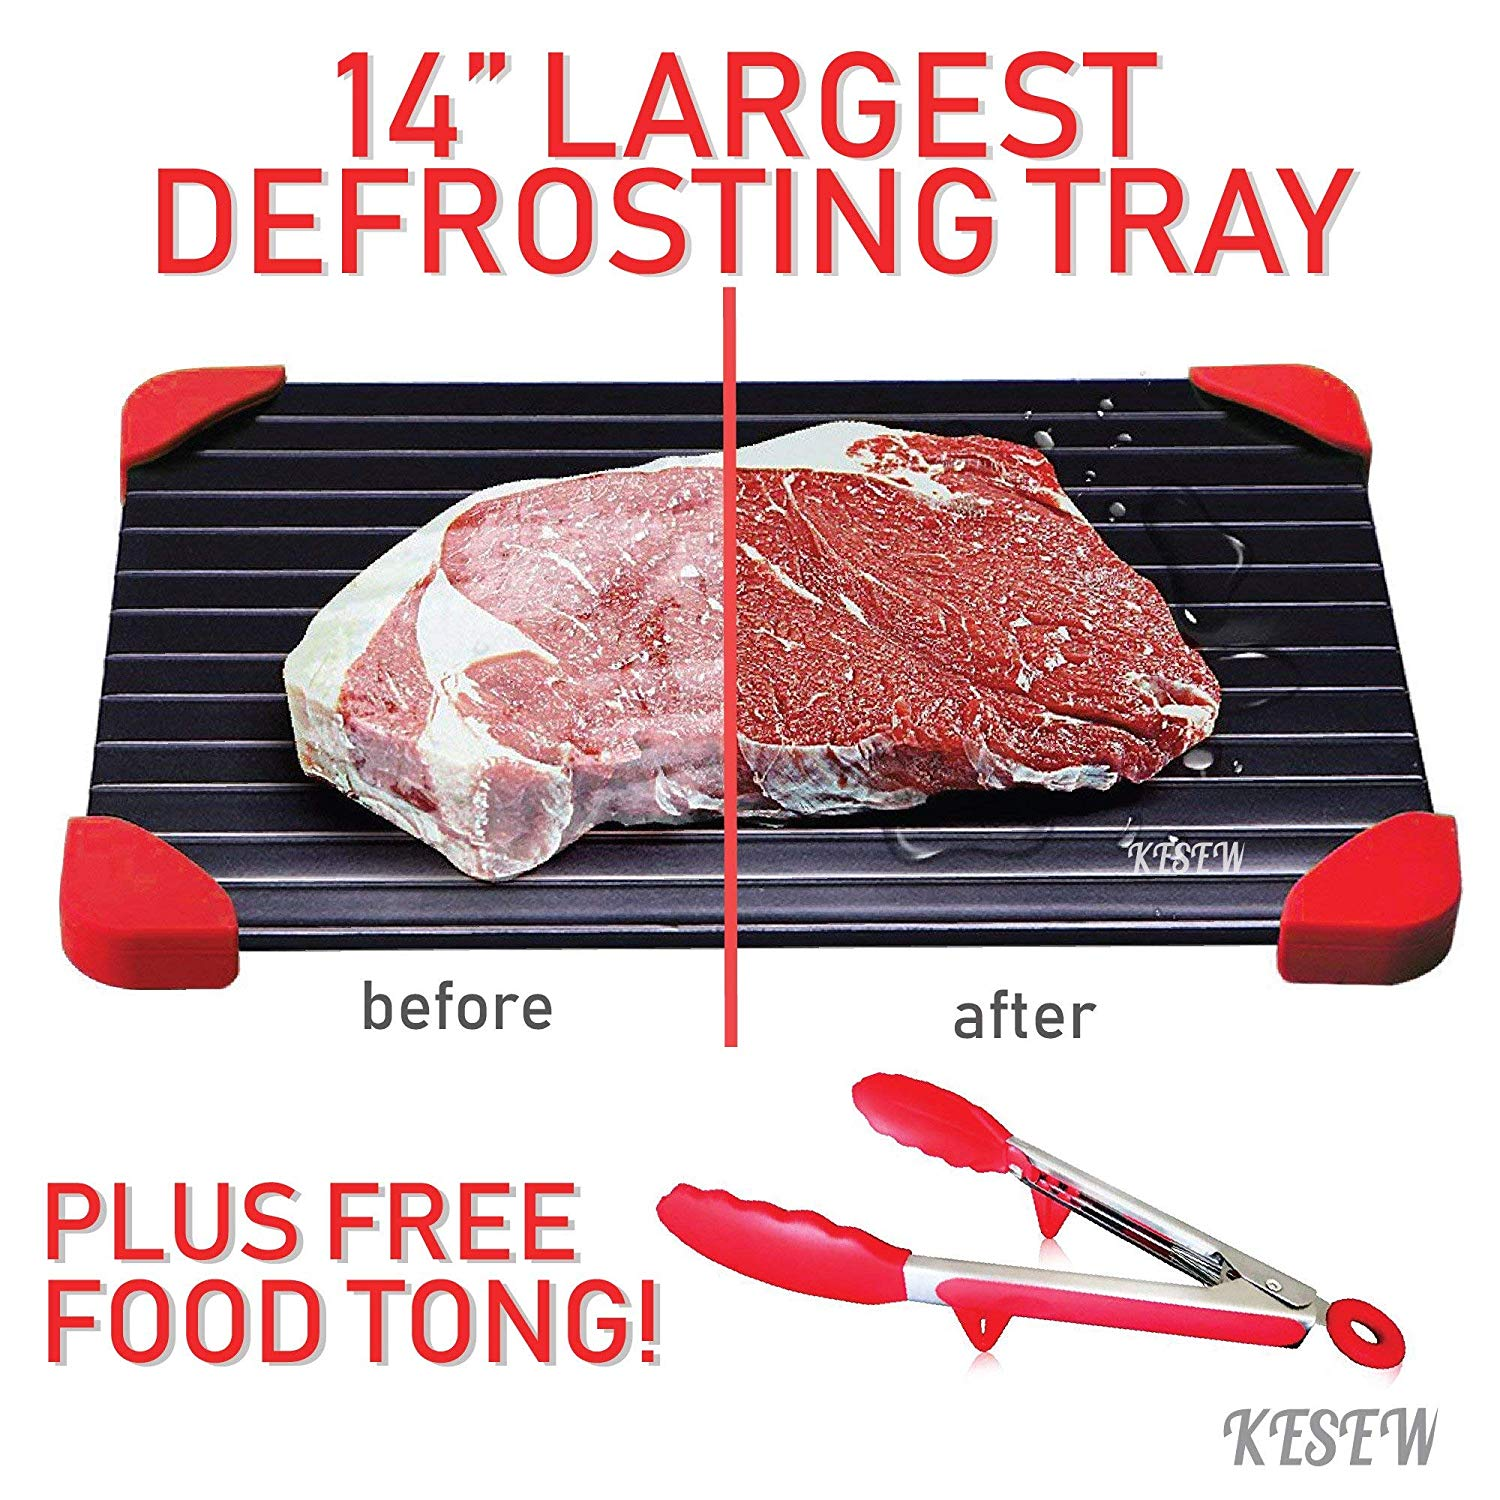 Defrosting Tray Set - LARGEST Defrosting Tray With Silicone Rubber Legs Plus Bonus Silicone Food Tong - Fastest, Safest & Easiest Way to Thaw Frozen Meats & Food - No Electricity or Water (Red)